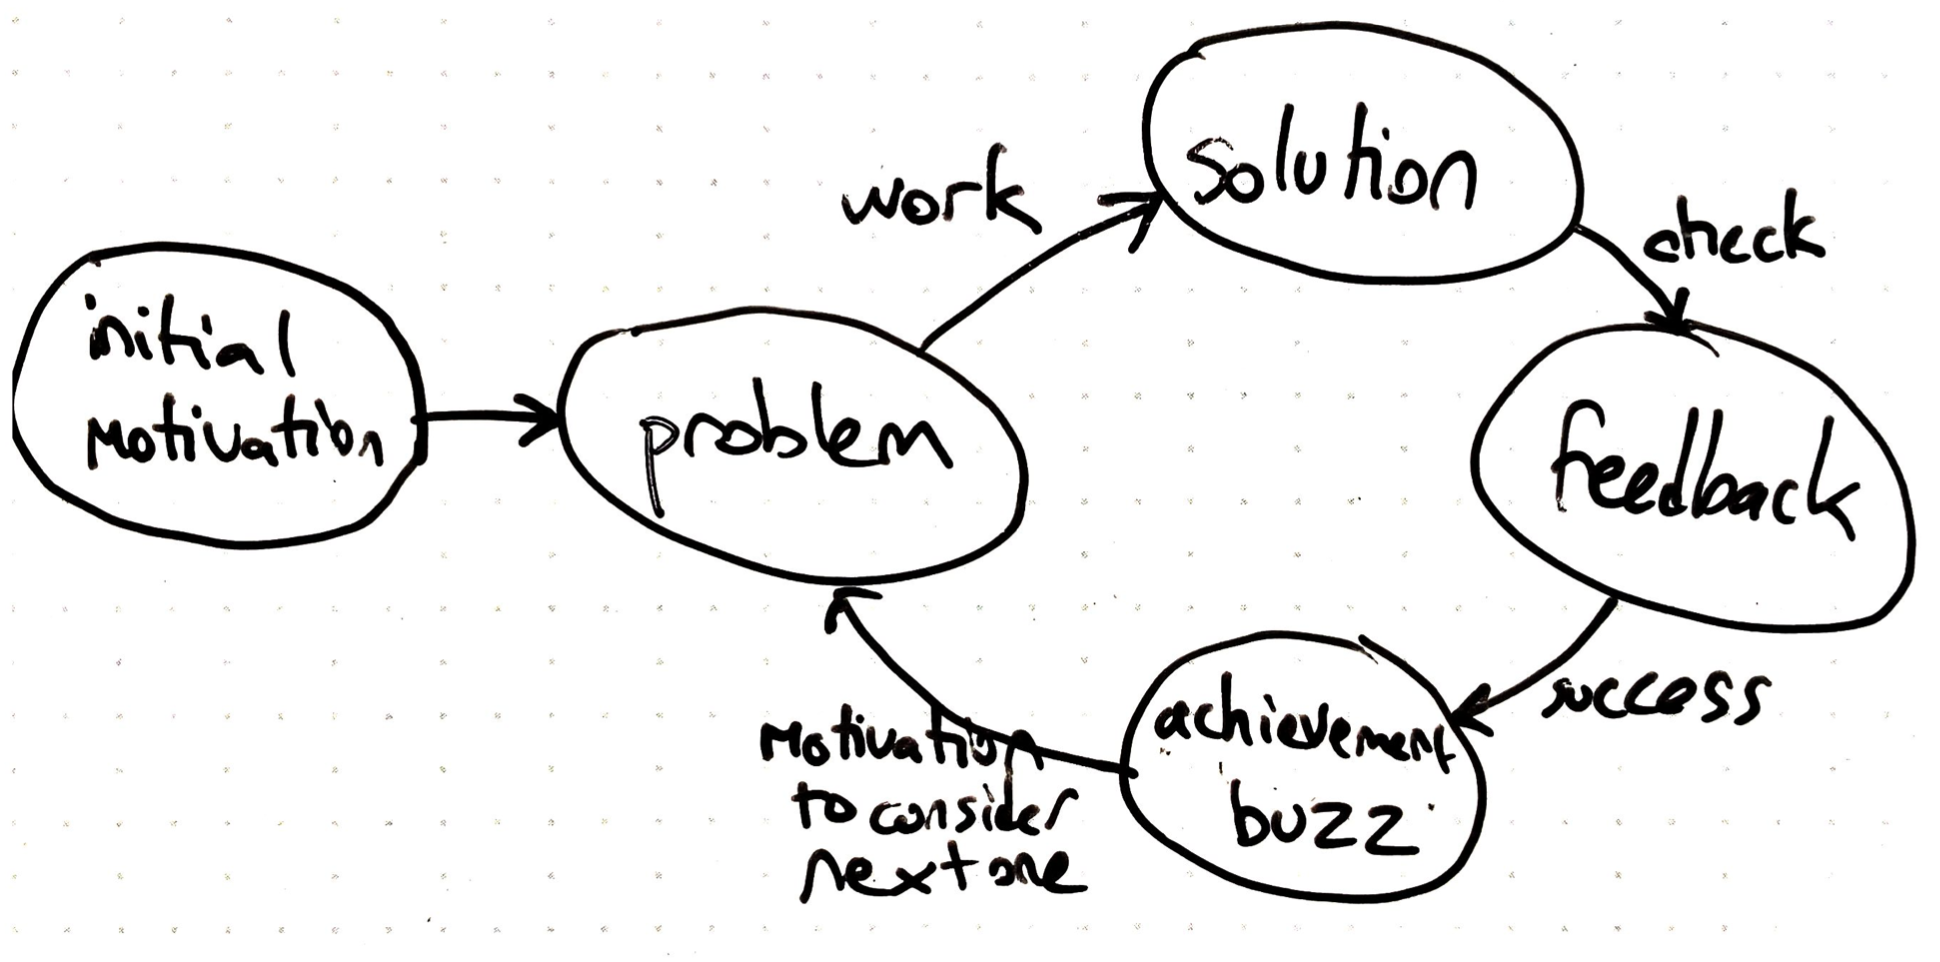 The steps in a learning loop: from problem to solution, to check, and if successful feeling of knowledge buzz, then onto next problem